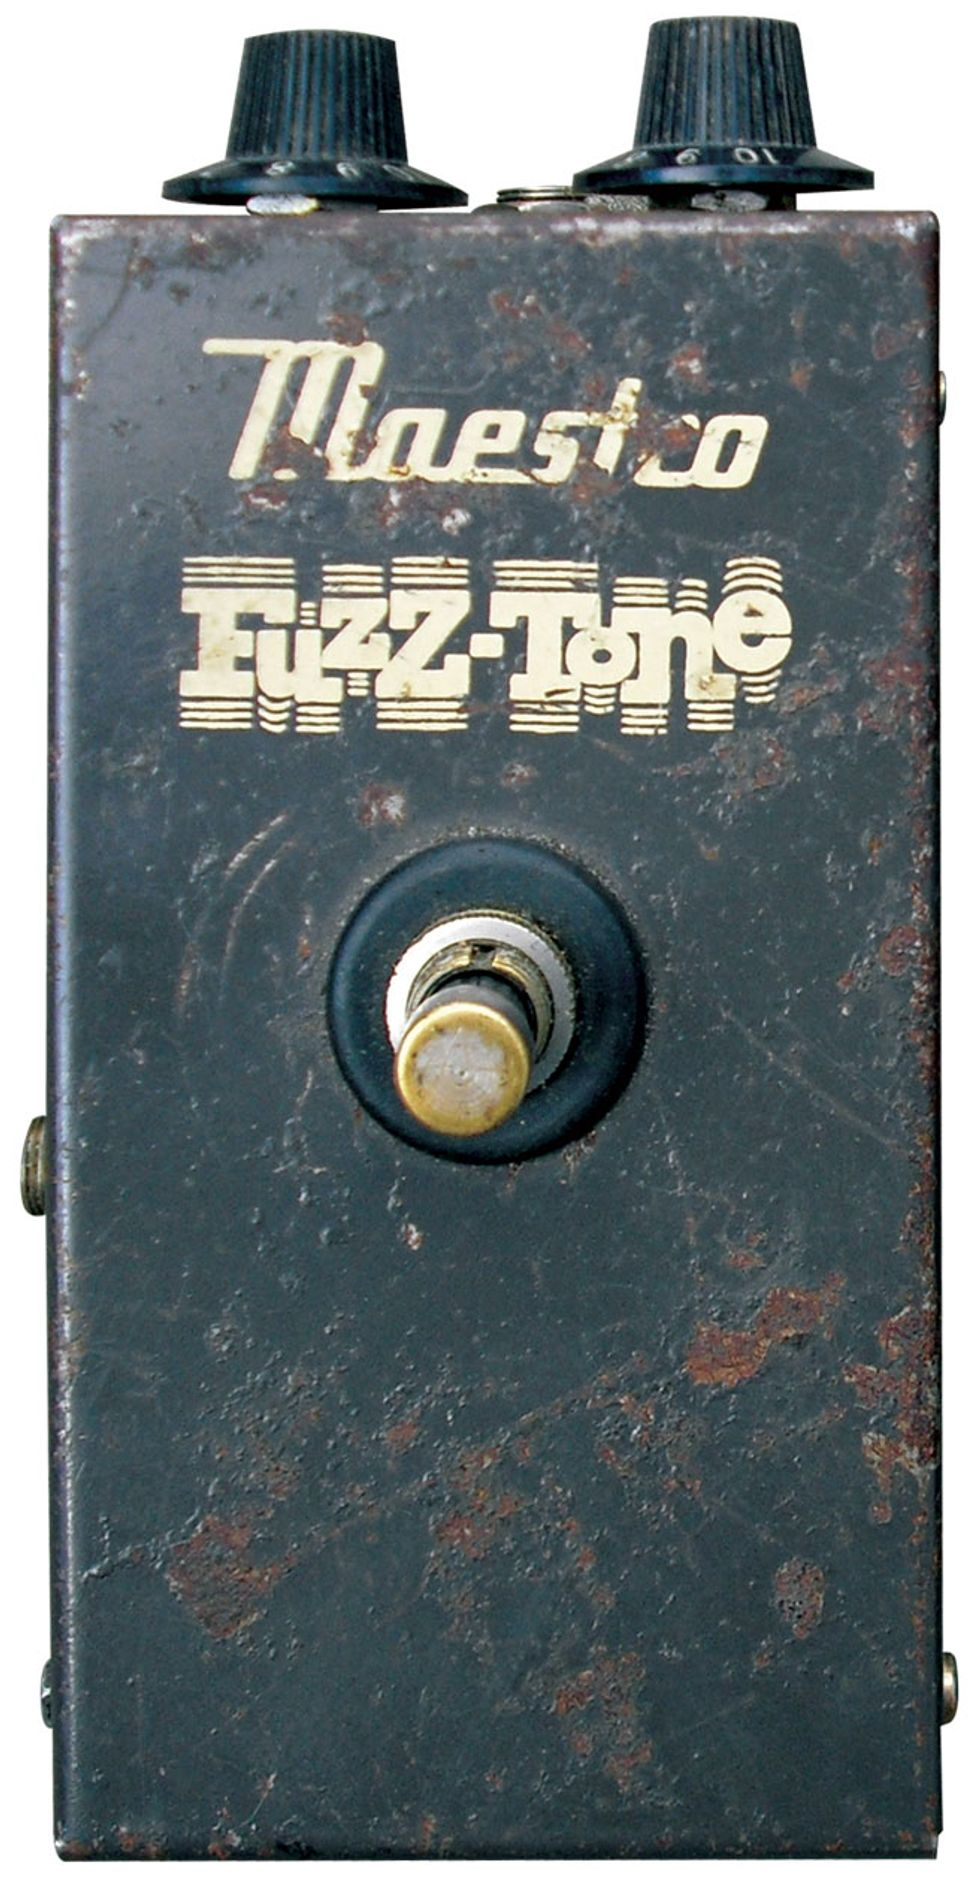 Face The Fuzz A Beginners And Skeptics Guide To Pedals Box In Fact Keith Richards Famed Riff On I Cant Get No Satisfaction Was Supposed Be Placeholder For